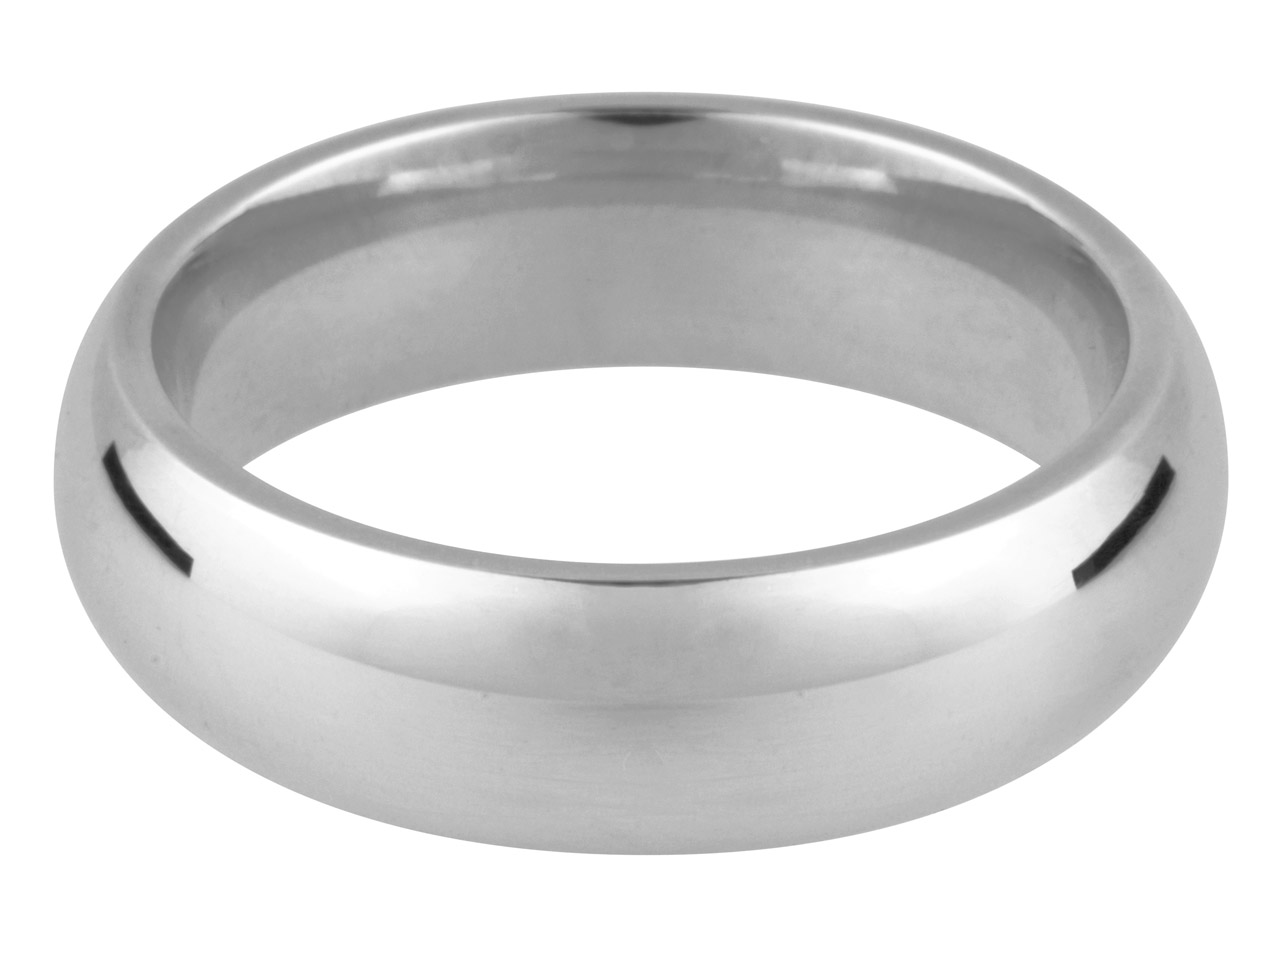 Palladium Court Wedding Ring 6.0mm Q 8.3gms Medium Weight Hallmarked  Wall Thickness 2.32mm